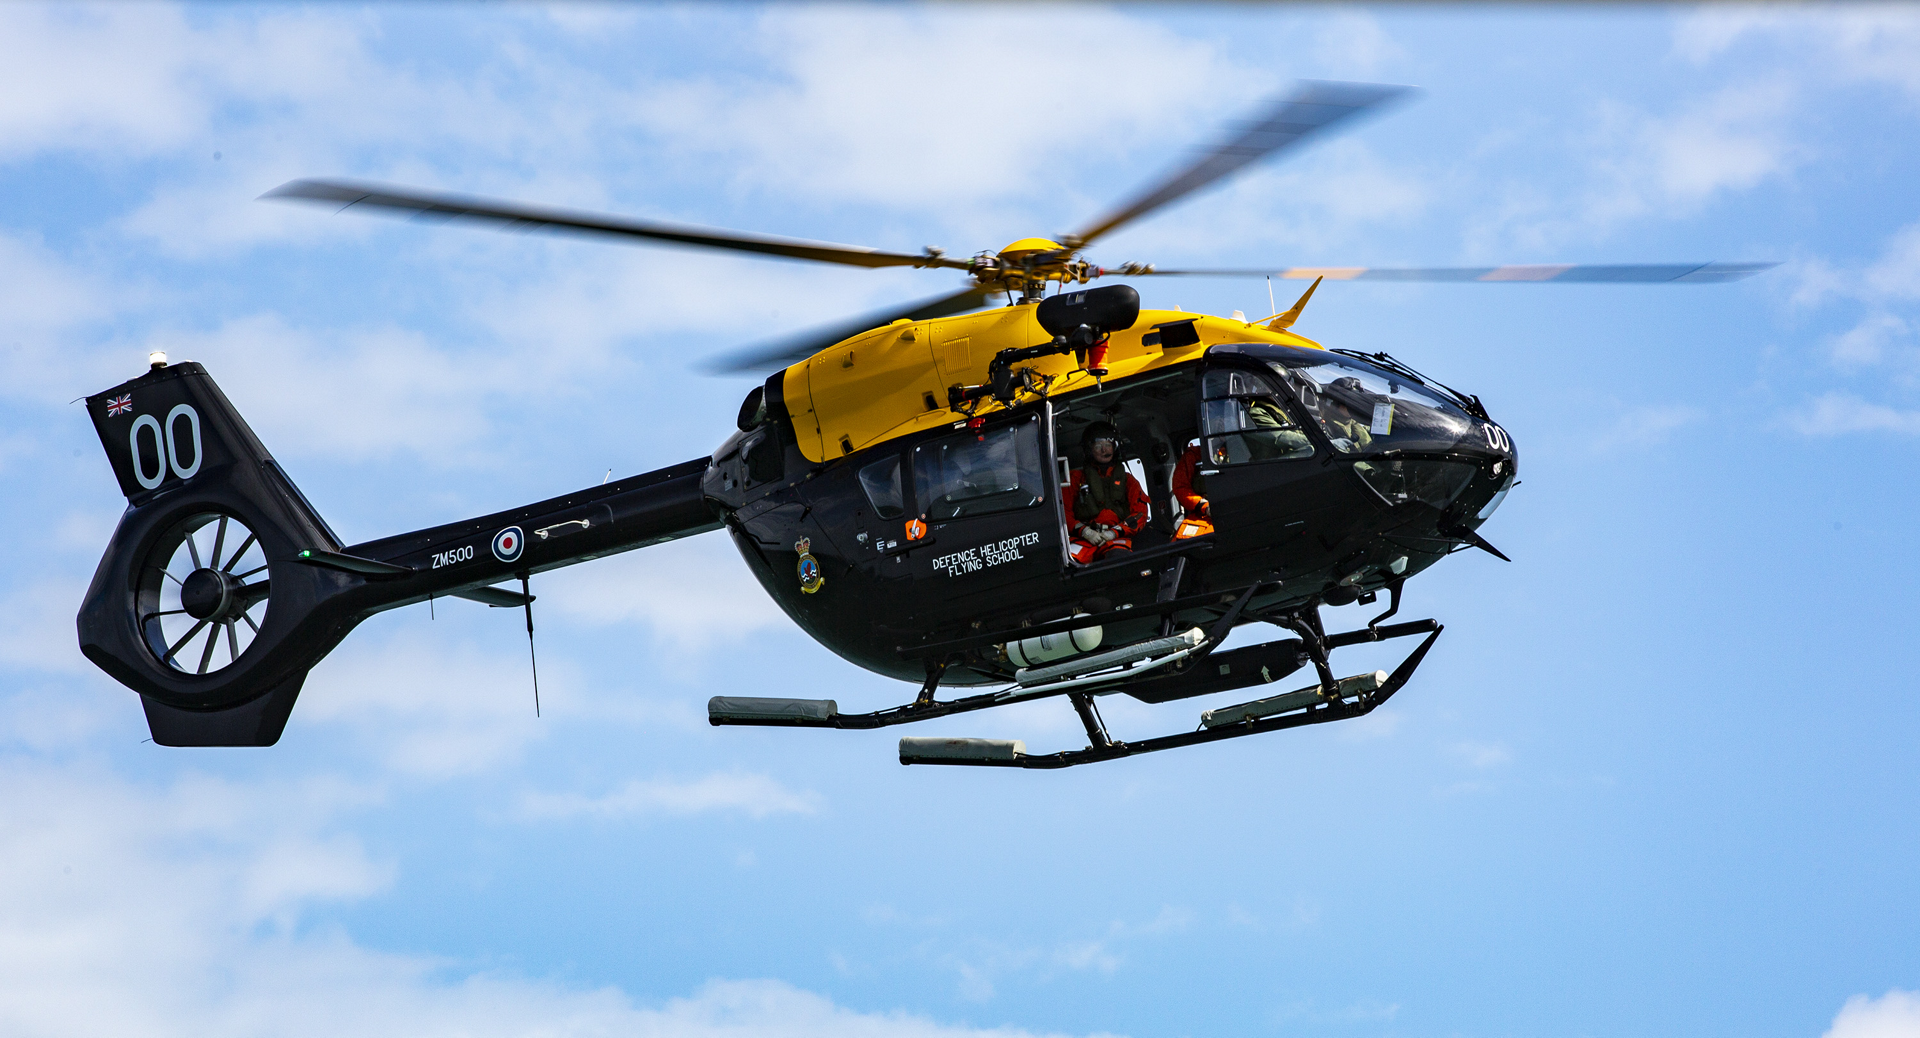 The Jupiter helicopter based at RAF Valley was able to fly over water for the first time today, working alongside a Smit Don practicing various hovering exercises above water.